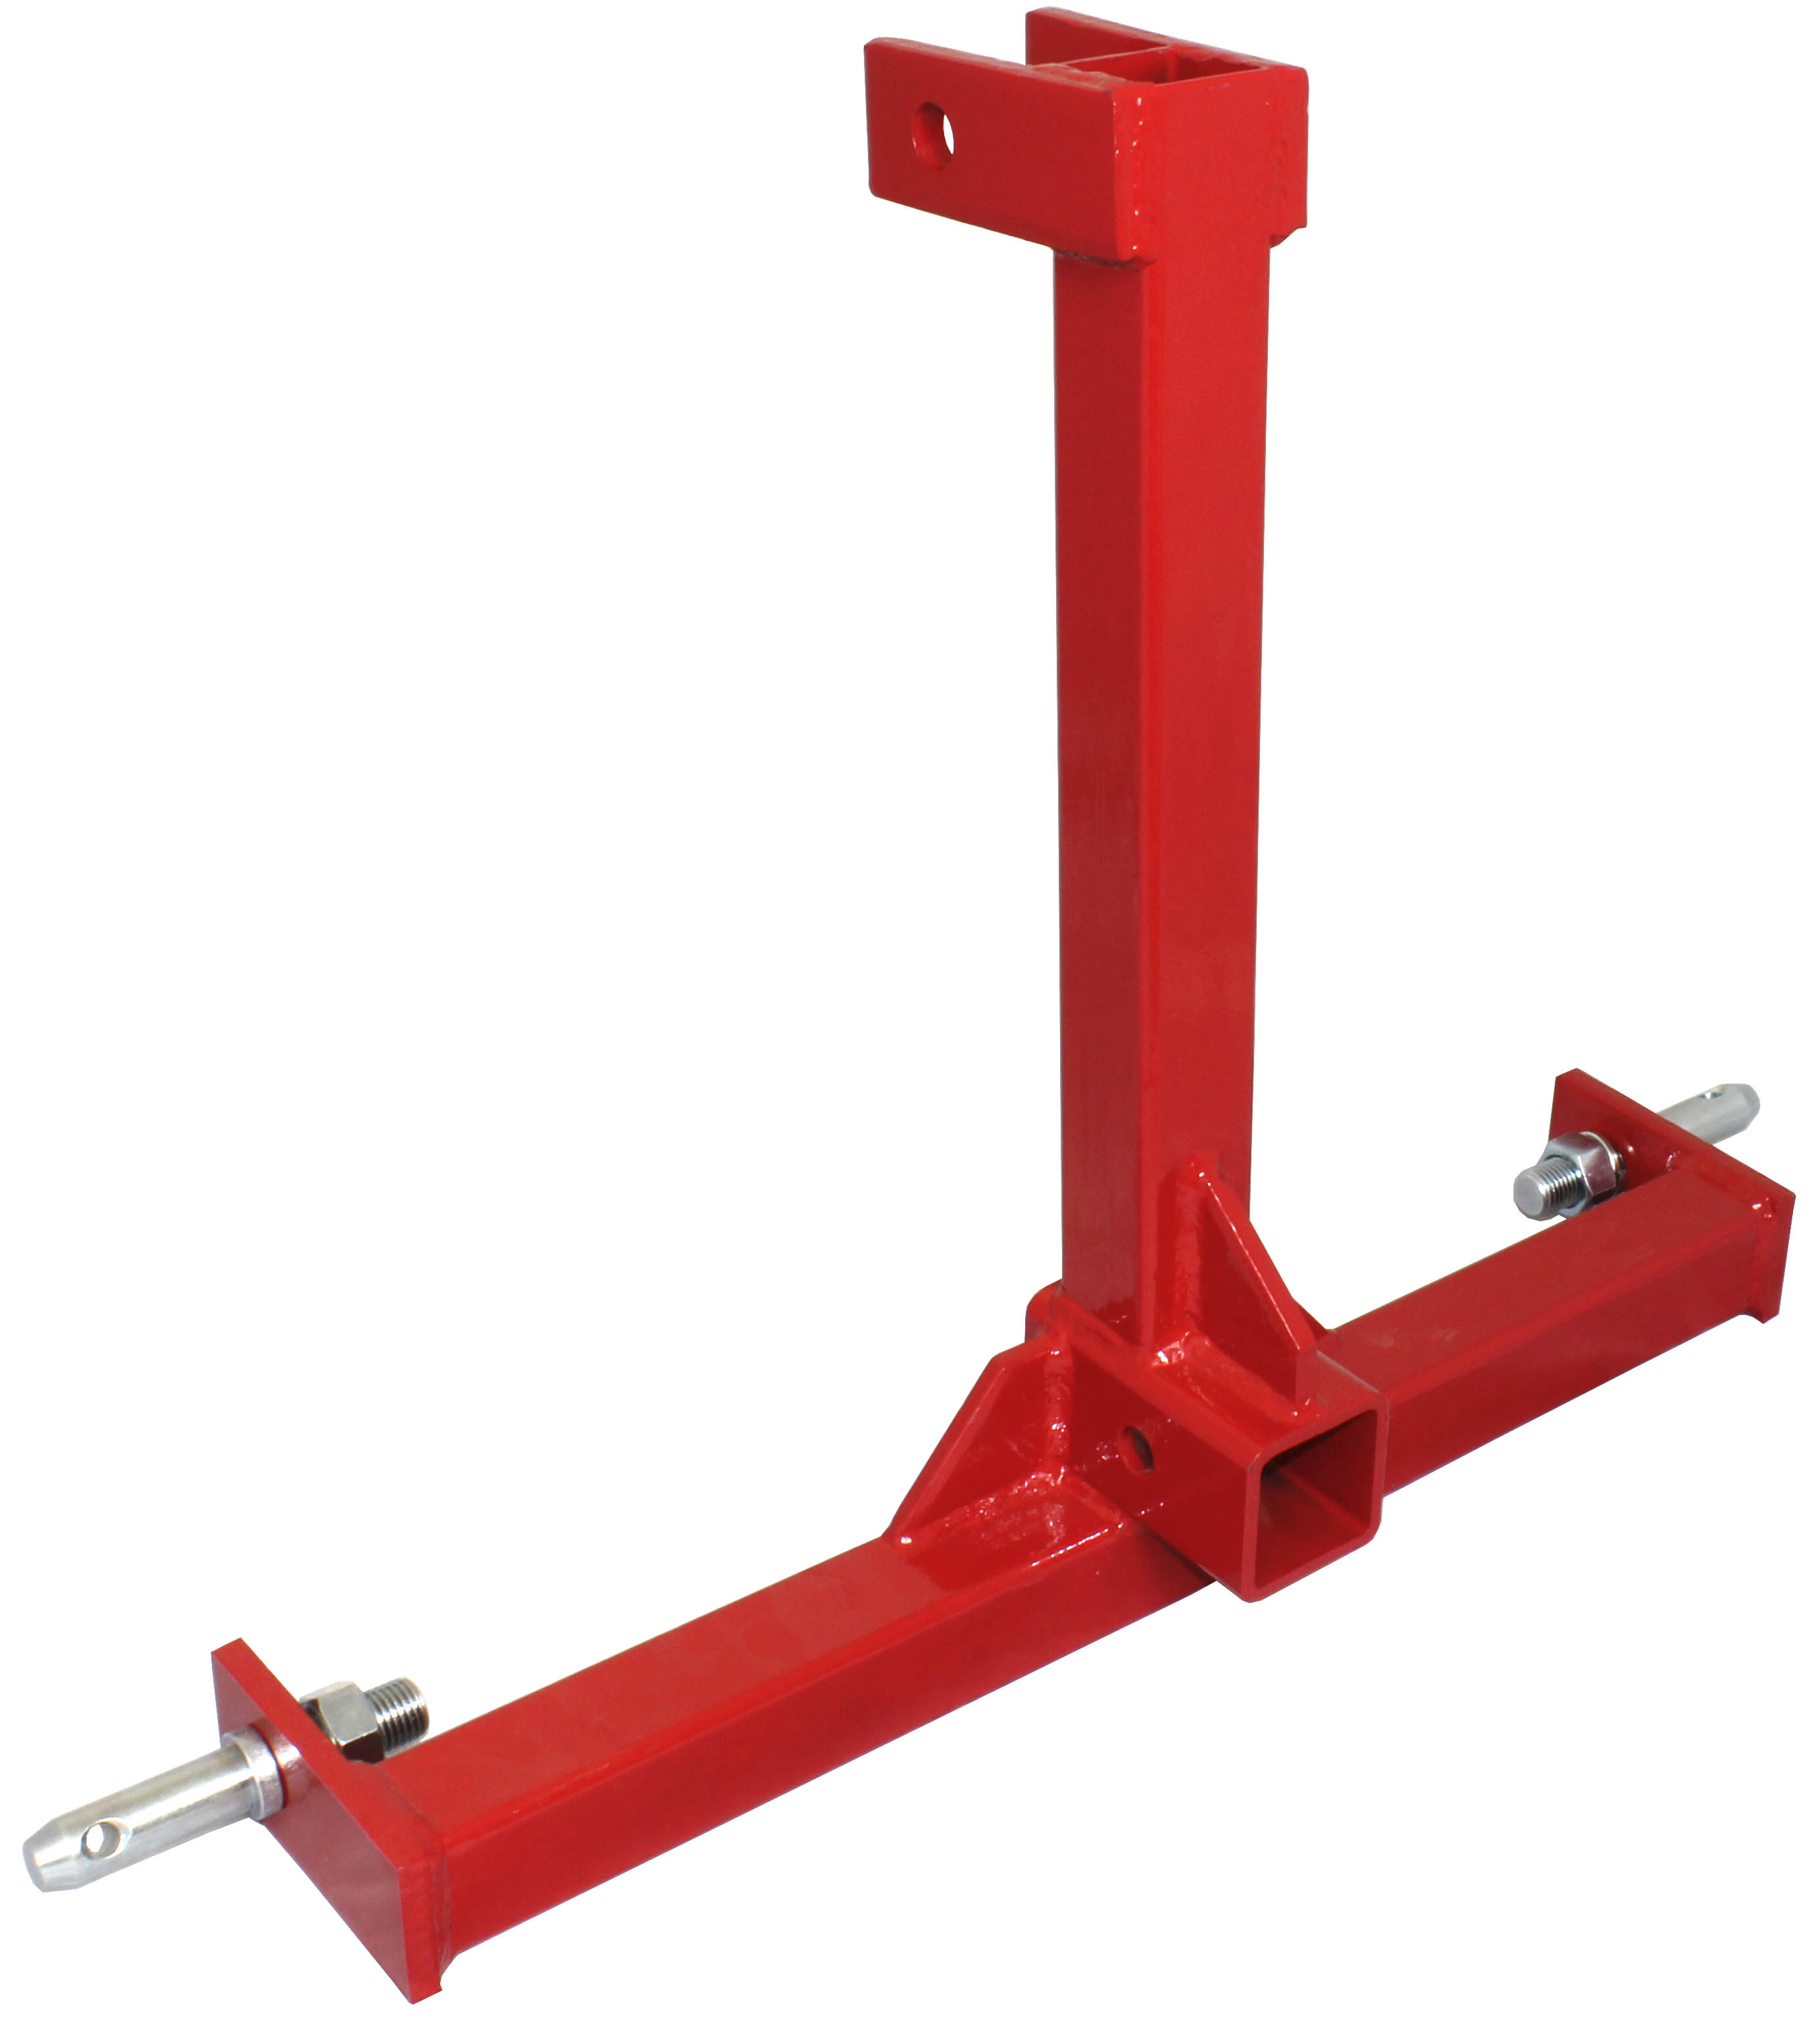 Category 1 Drawbar Tractor trailer hitch receiver 3 Point...